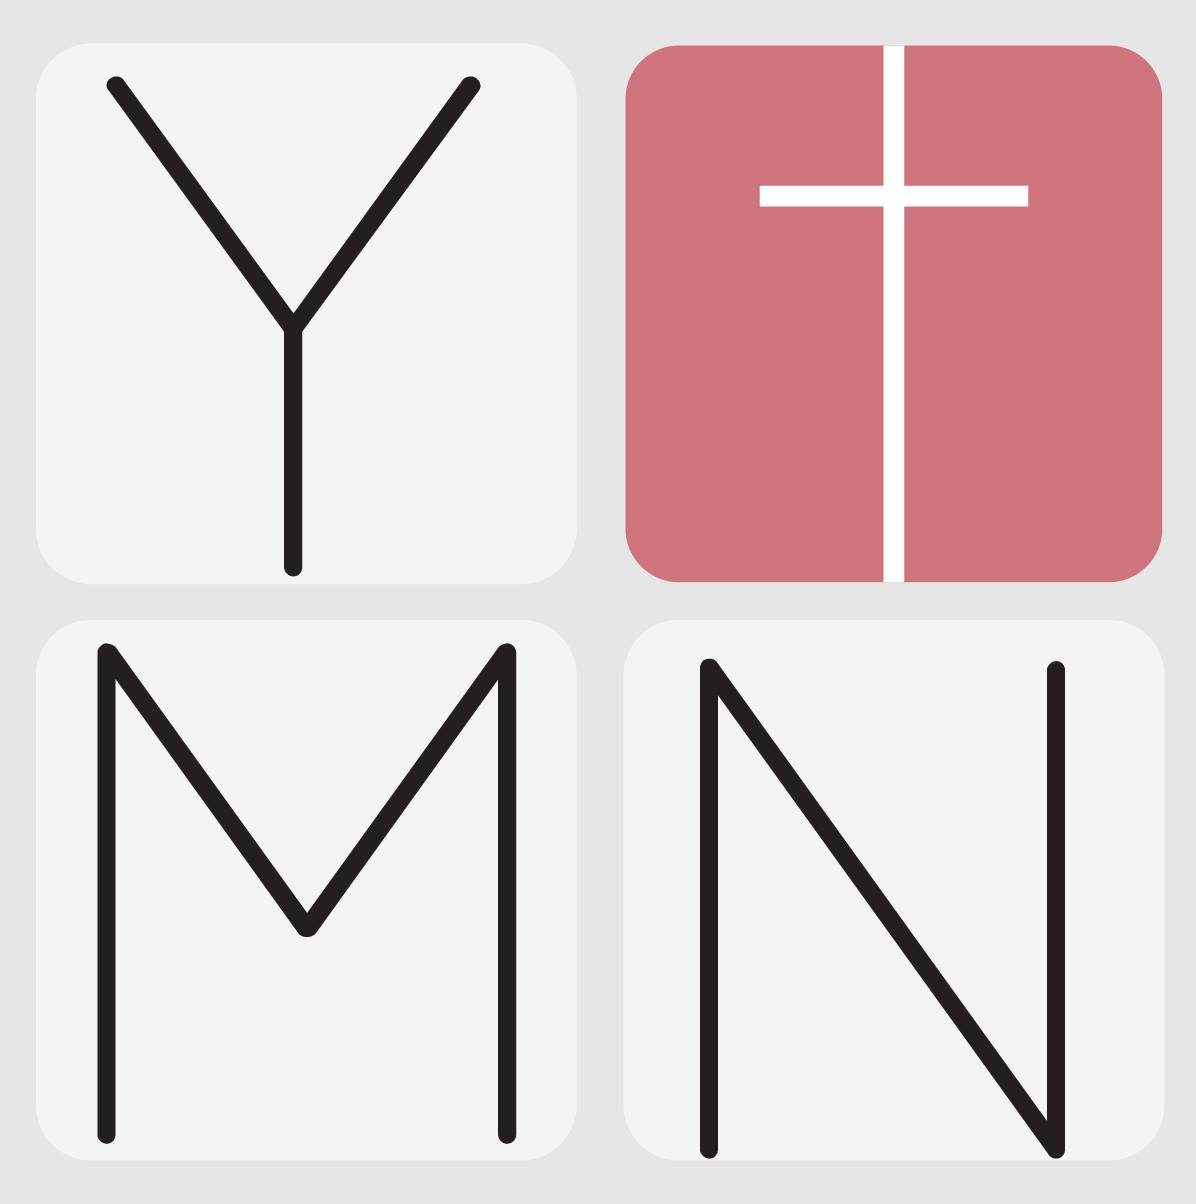 Youth Ministers' Network